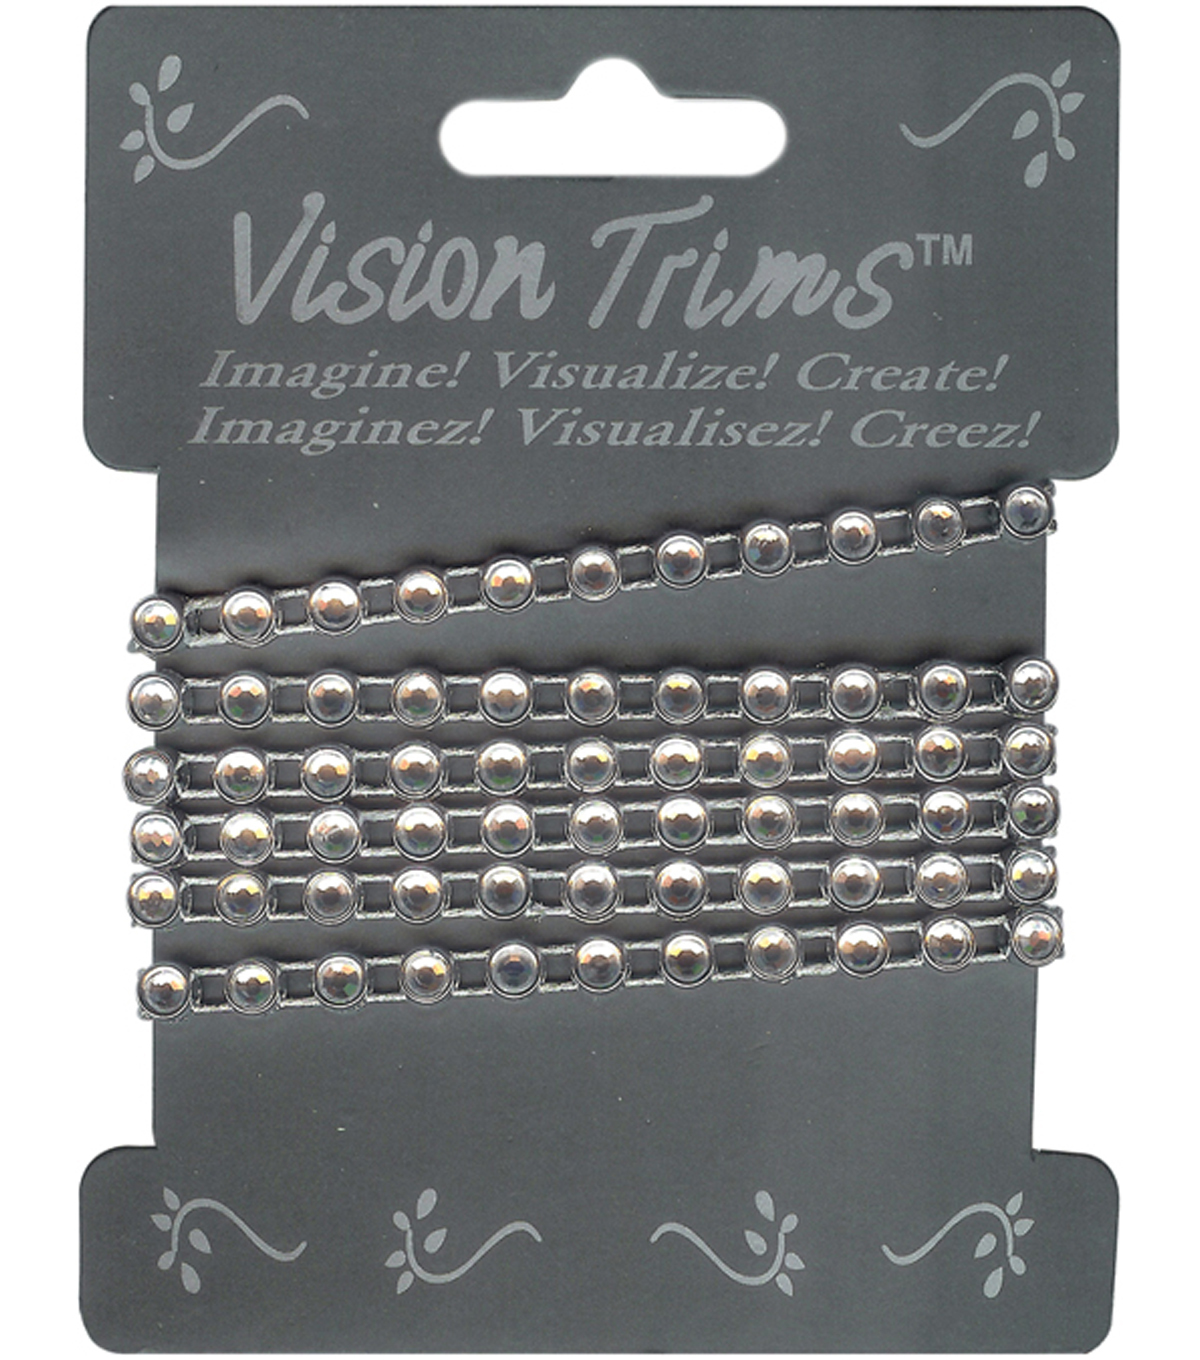 Vision Trims Genuine Rhinestone Trim